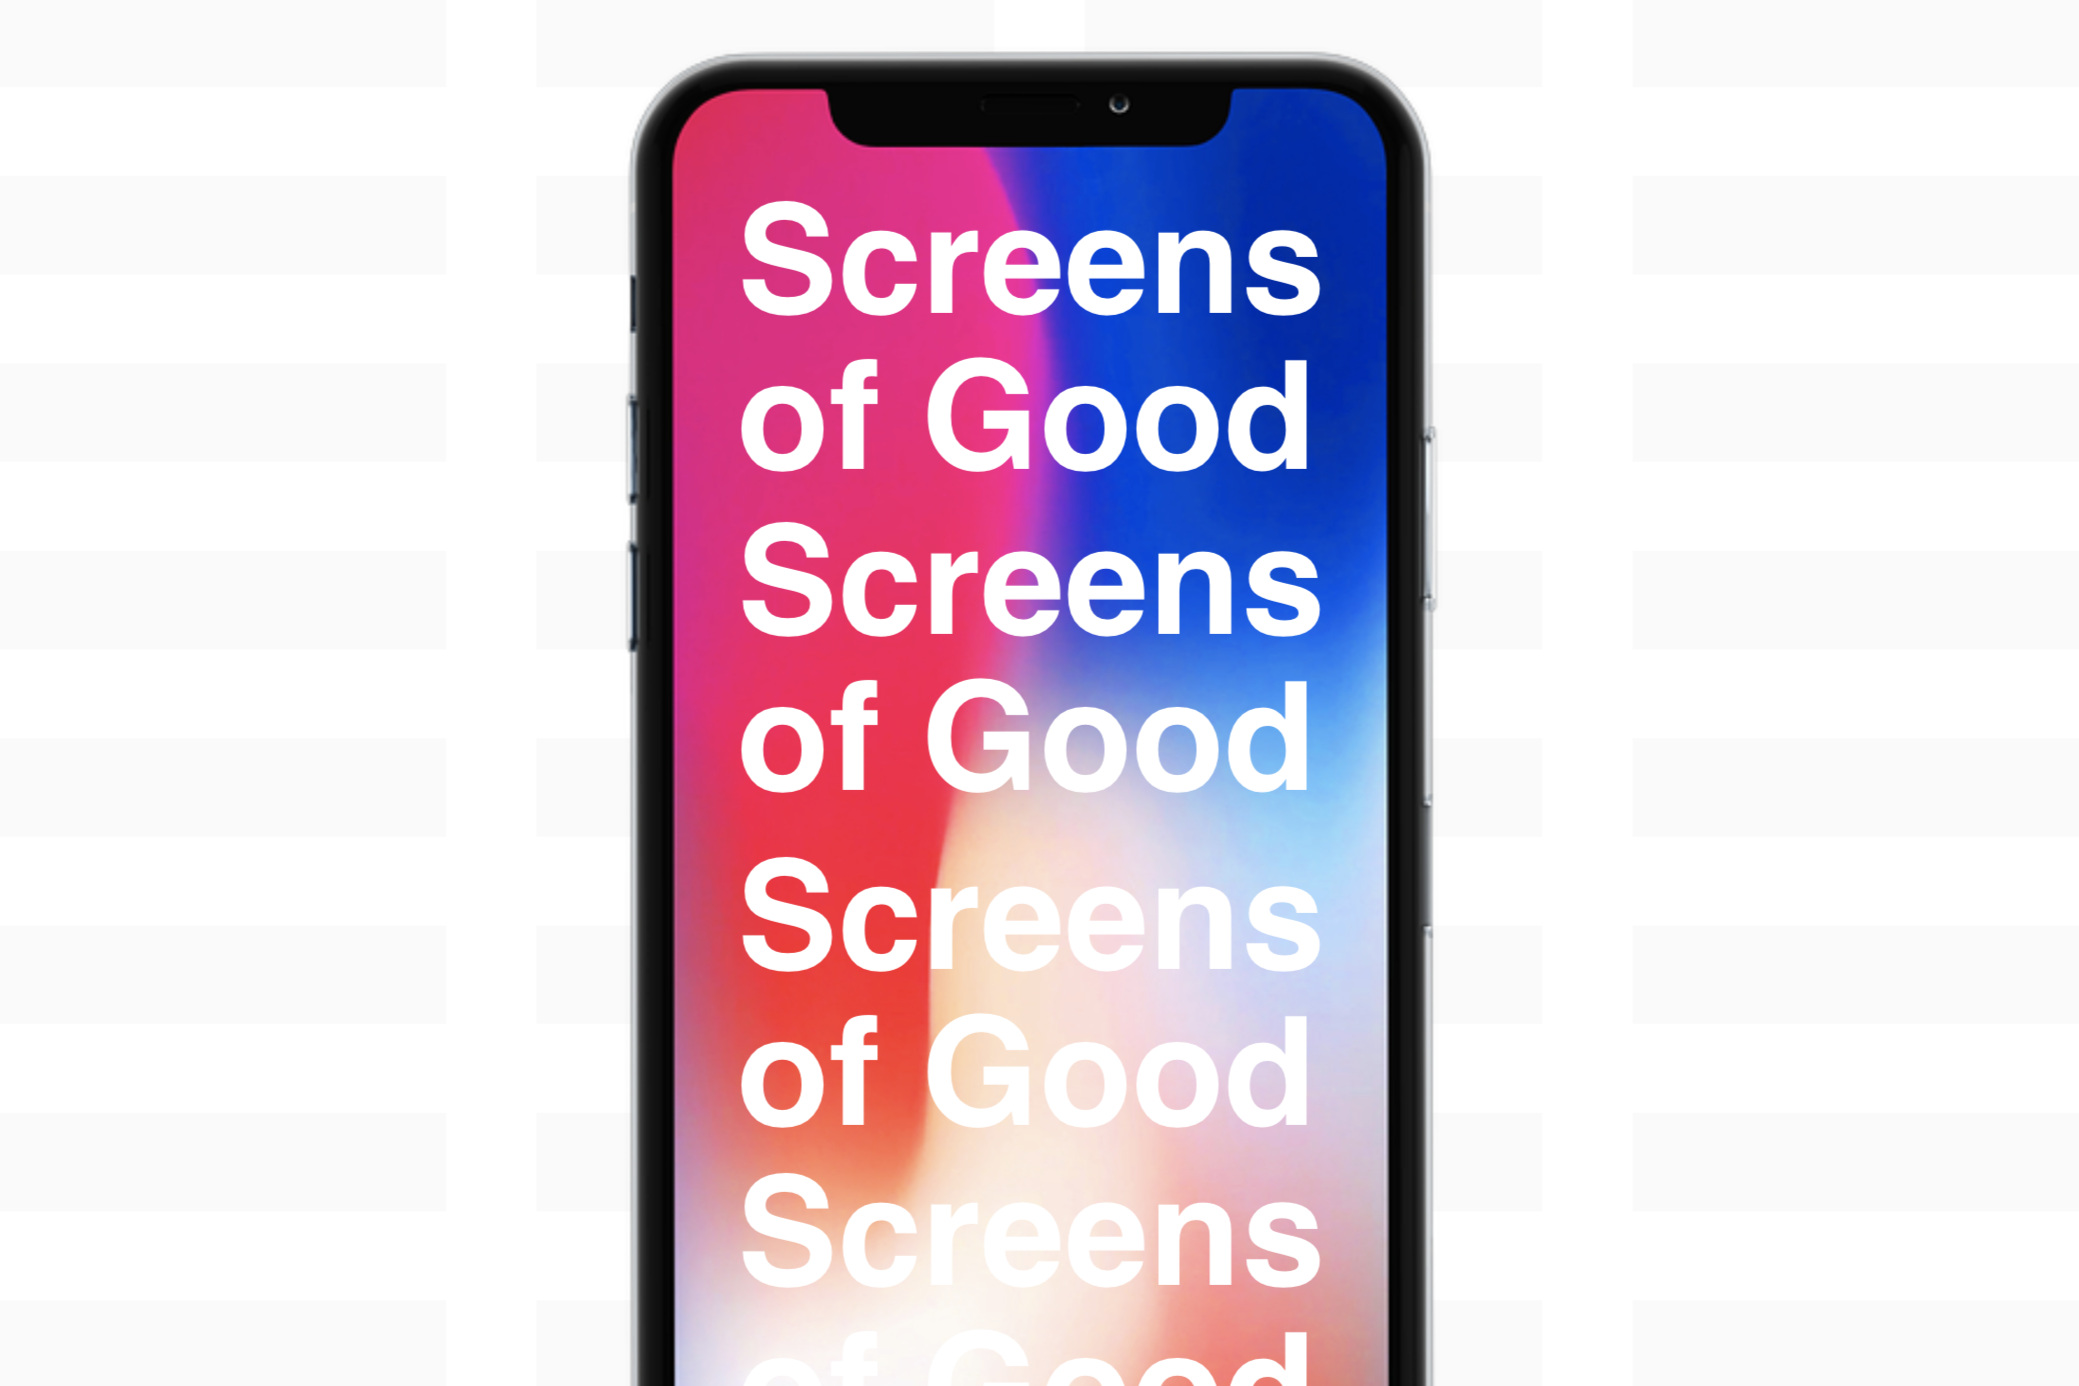 Screens of Good University of Cincinnati DAAP 2018